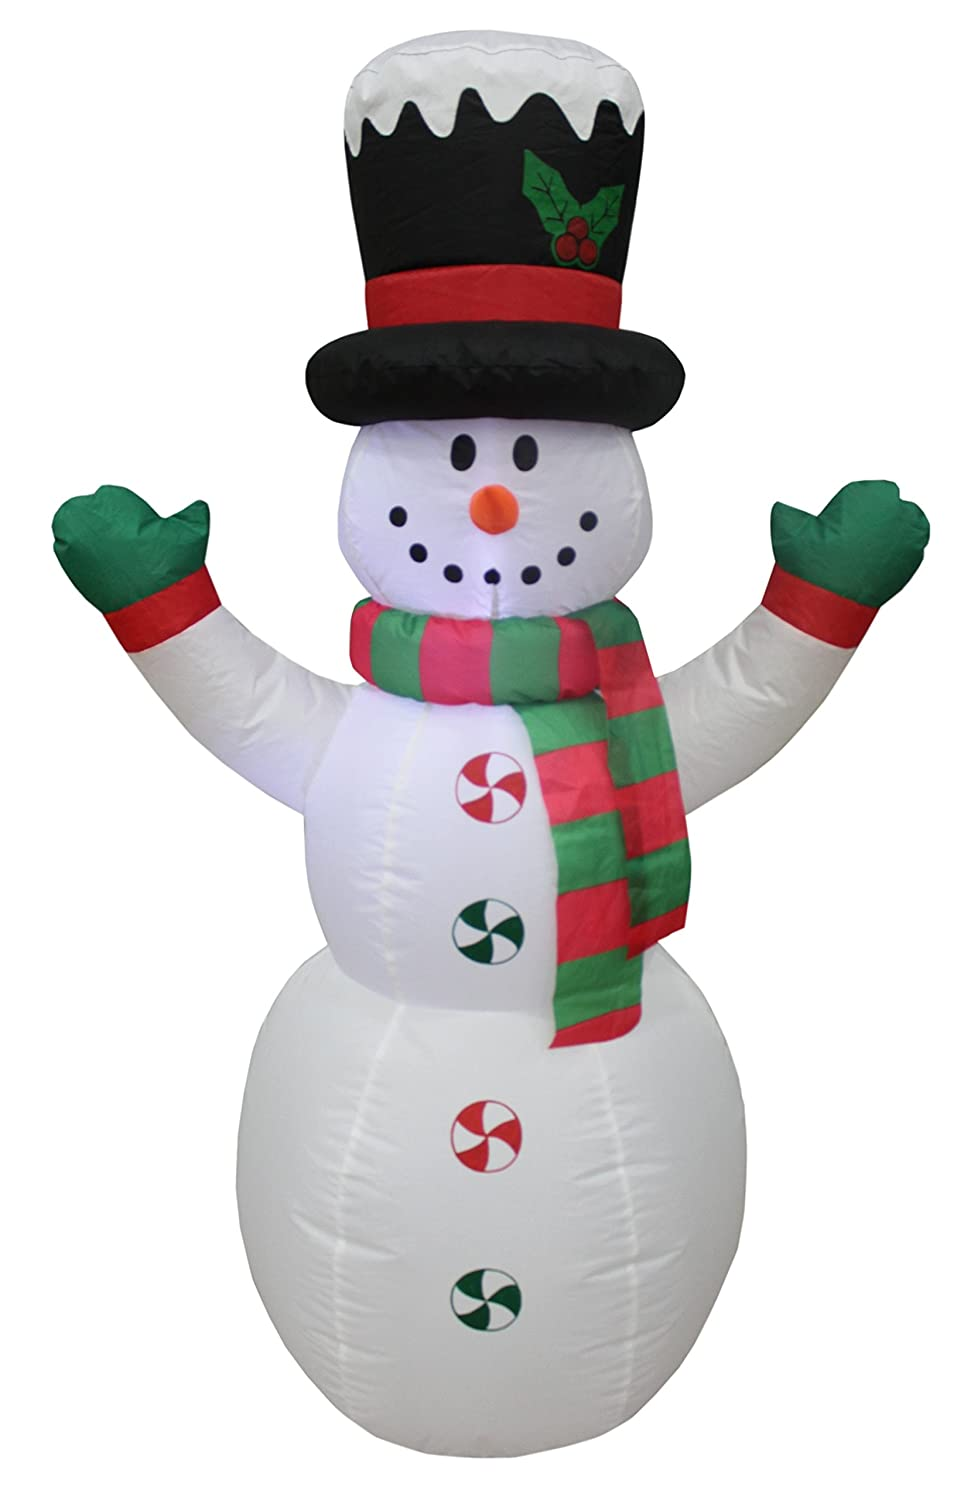 Amazon.com: 4 Foot Tall Lighted Christmas Inflatable Snowman with ...